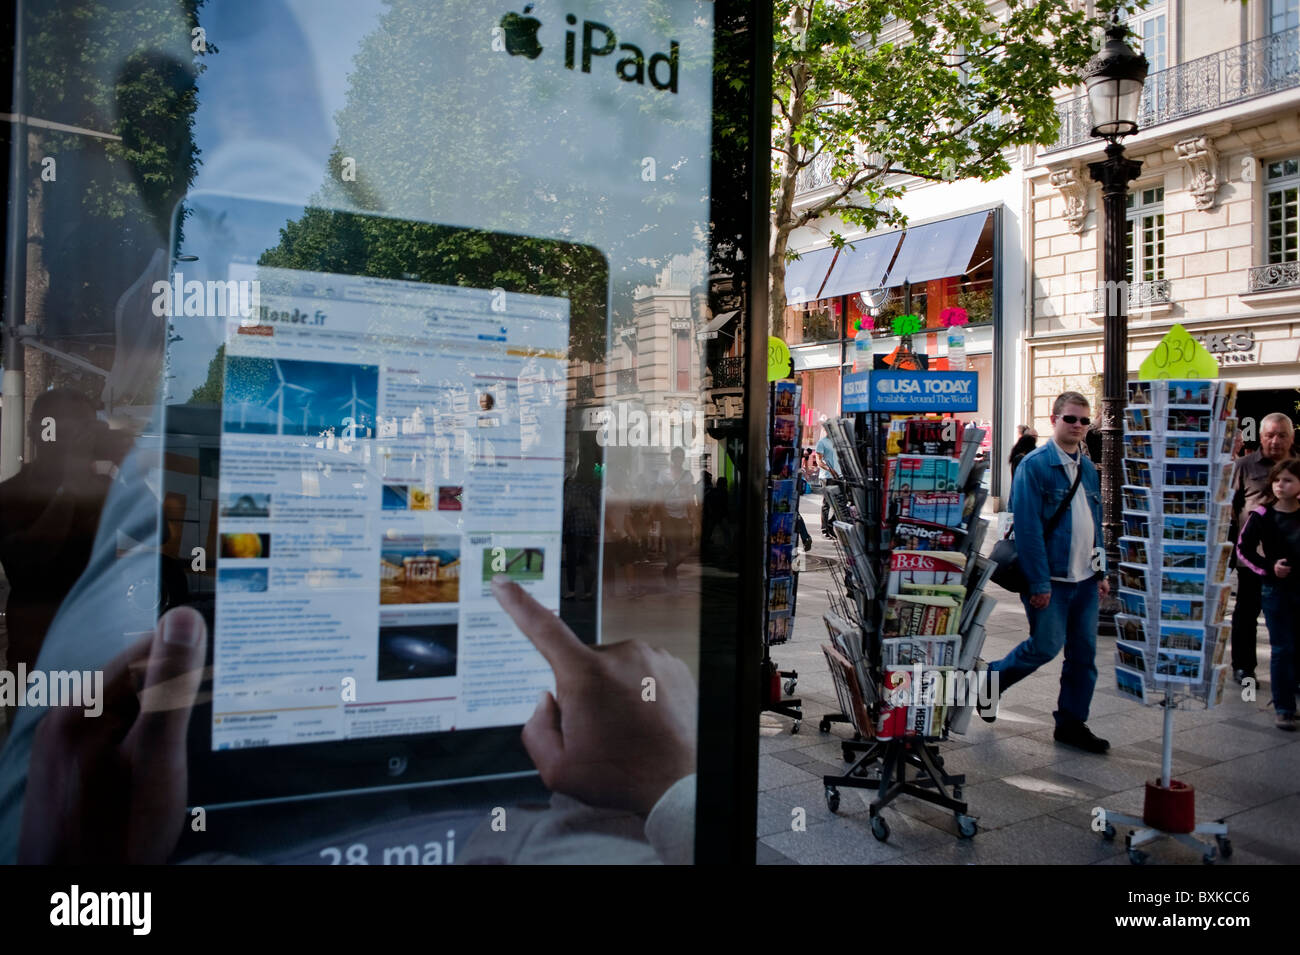 Paris  France  Newsstand  French Newspapers  Champs Elysees  Apple     Paris  France  Newsstand  French Newspapers  Champs Elysees  Apple IPad  Advertising  Shopping